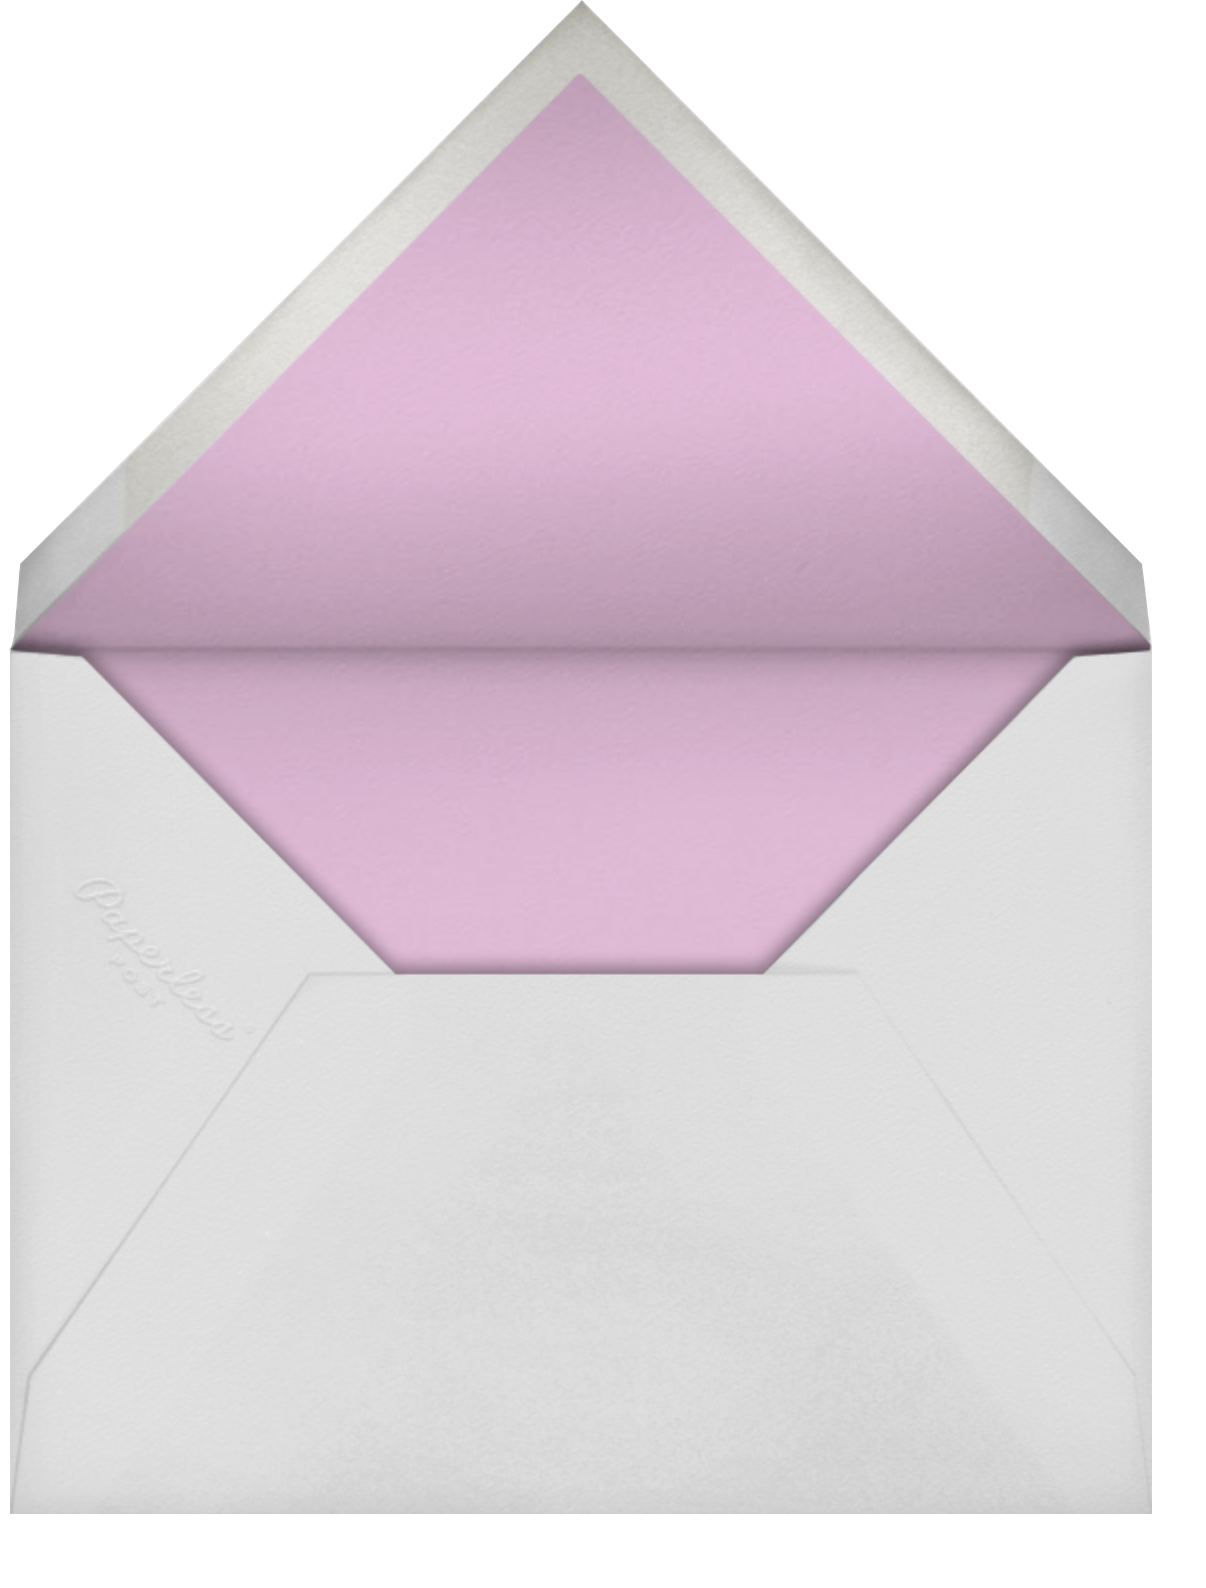 Candy Dots - kate spade new york - Adult birthday - envelope back